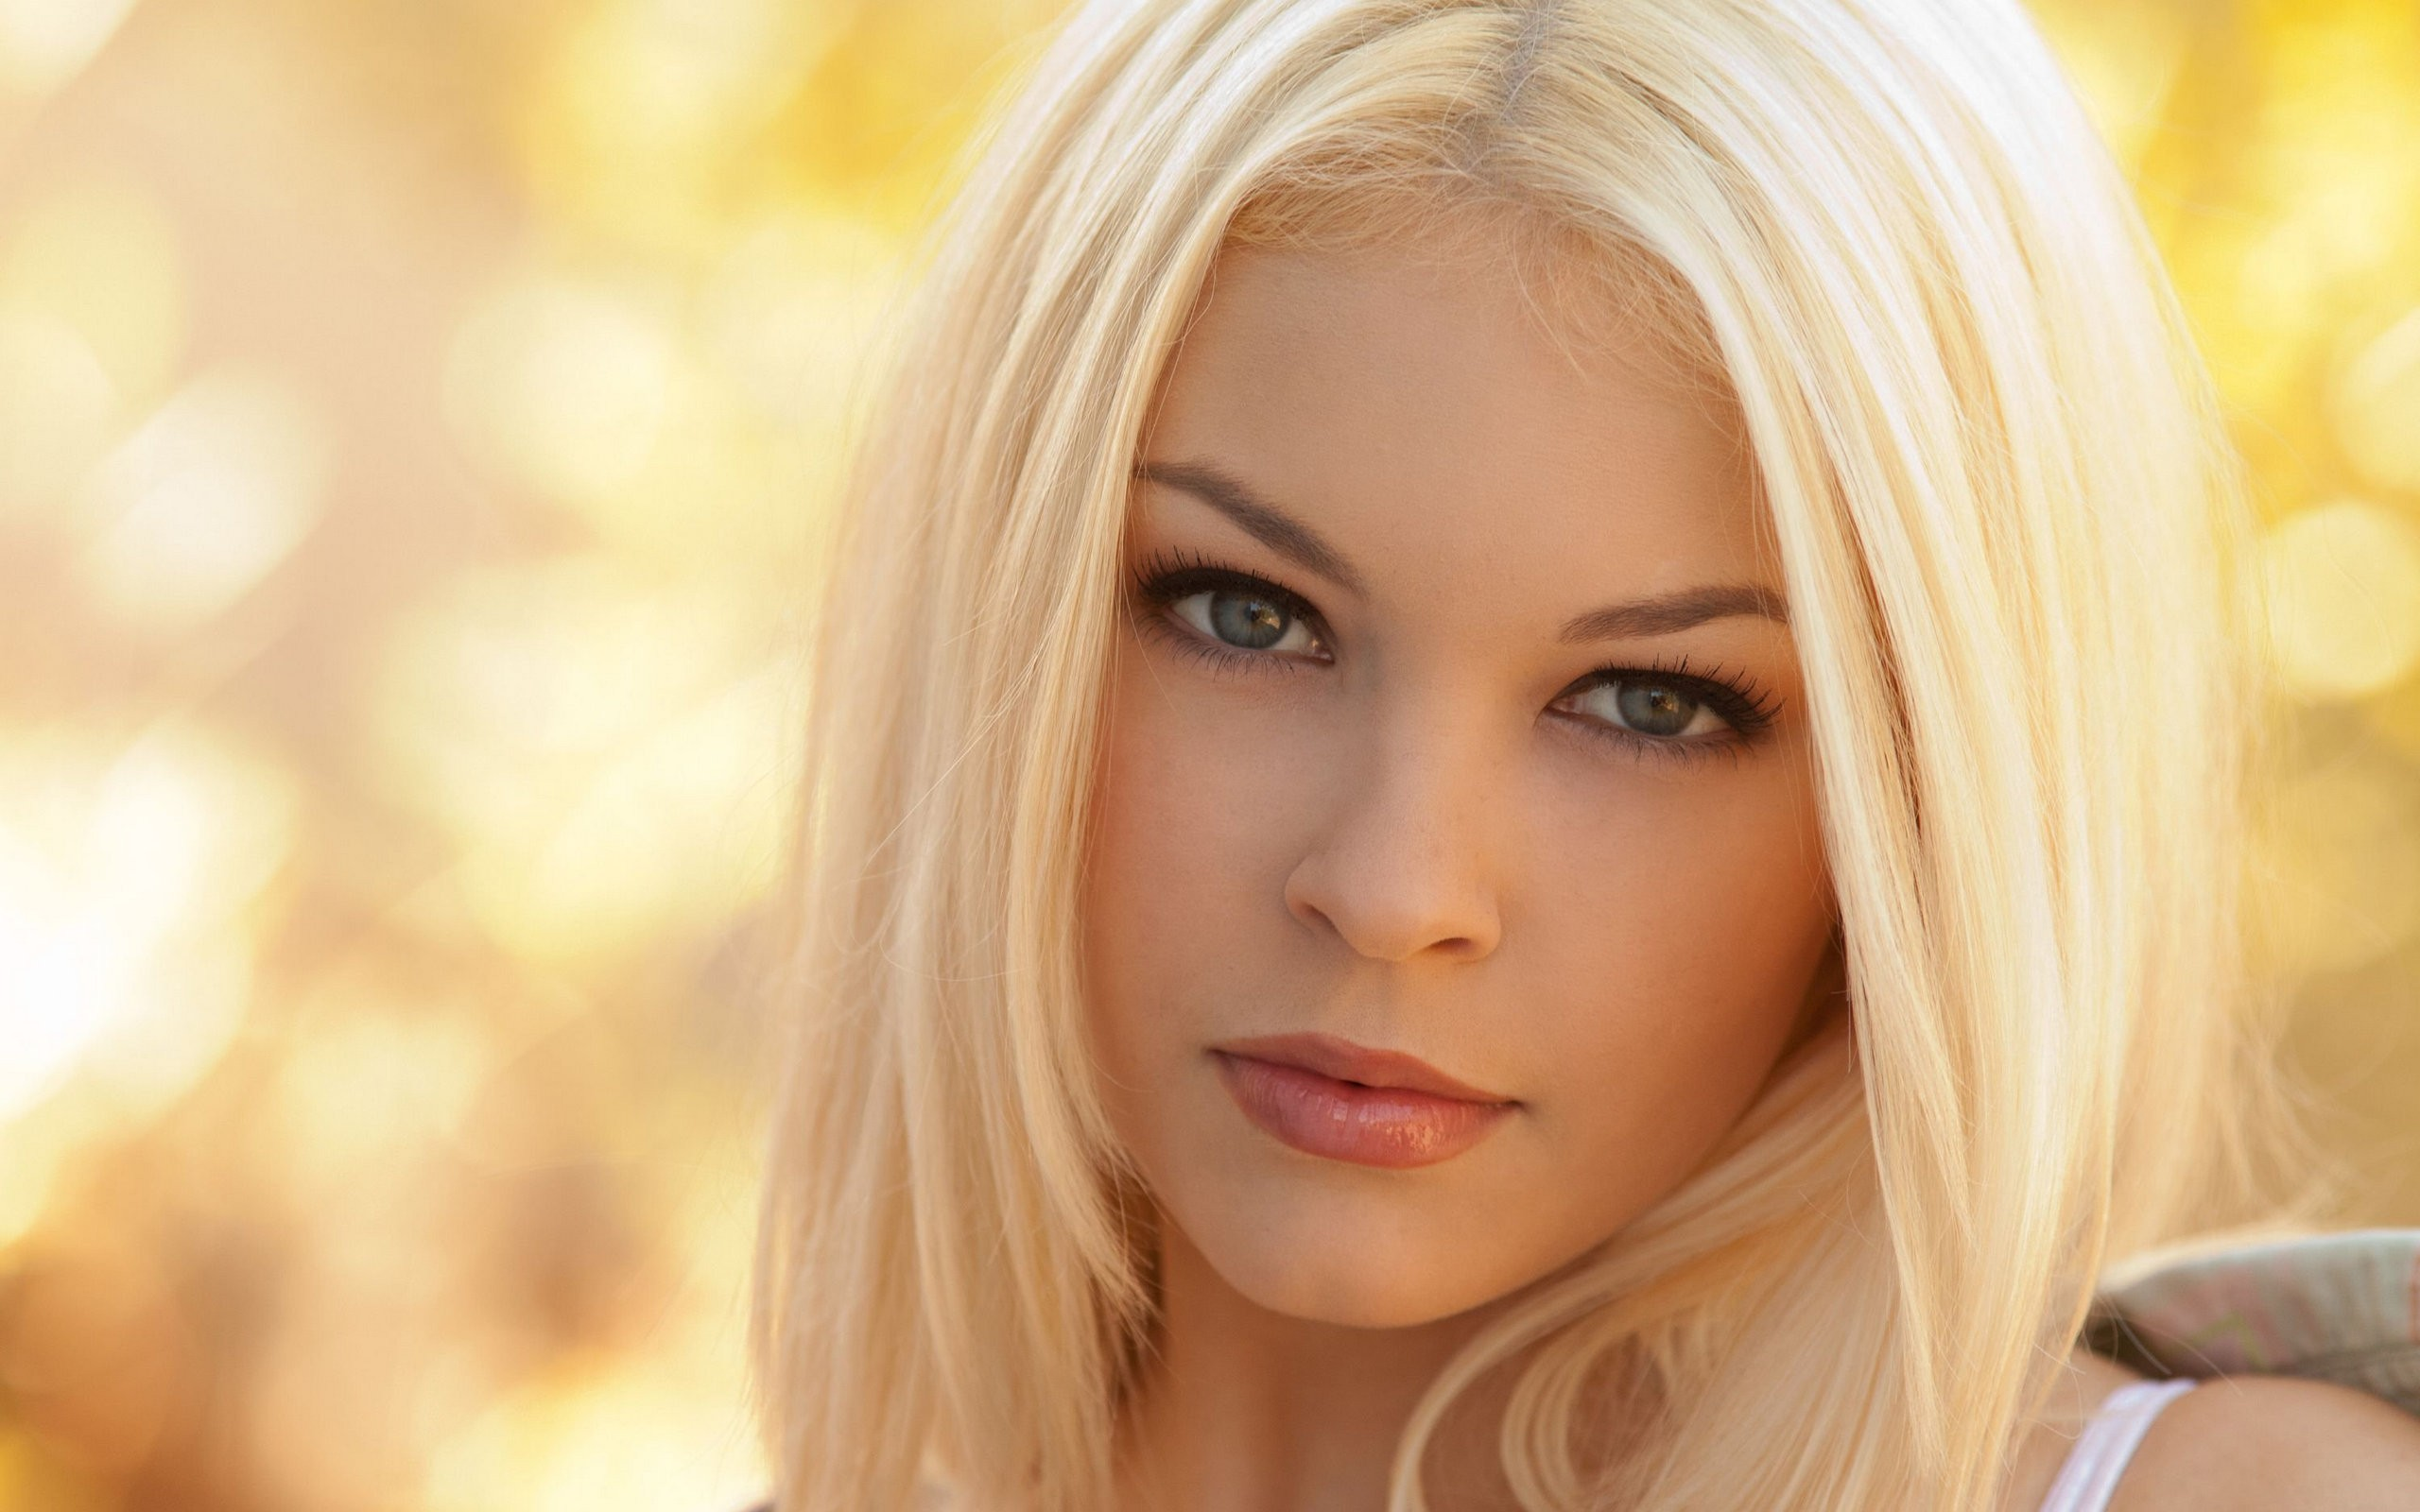 Photo Girl Blonde